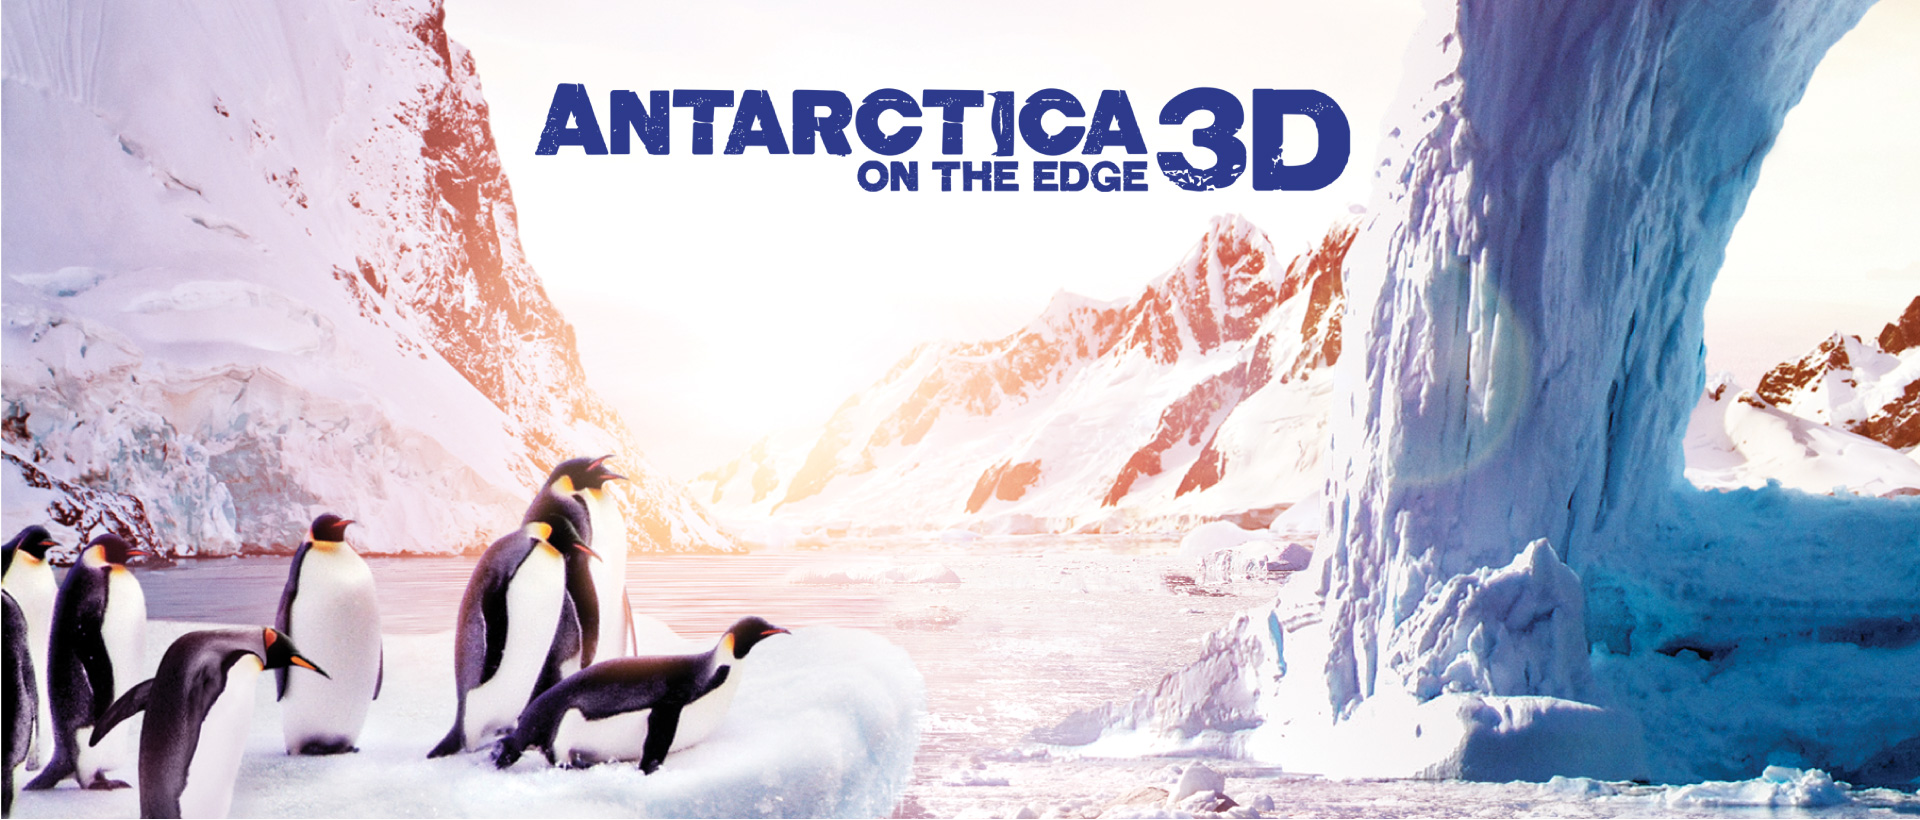 Antarctica 3D movie poster with images of icebergs and penguins